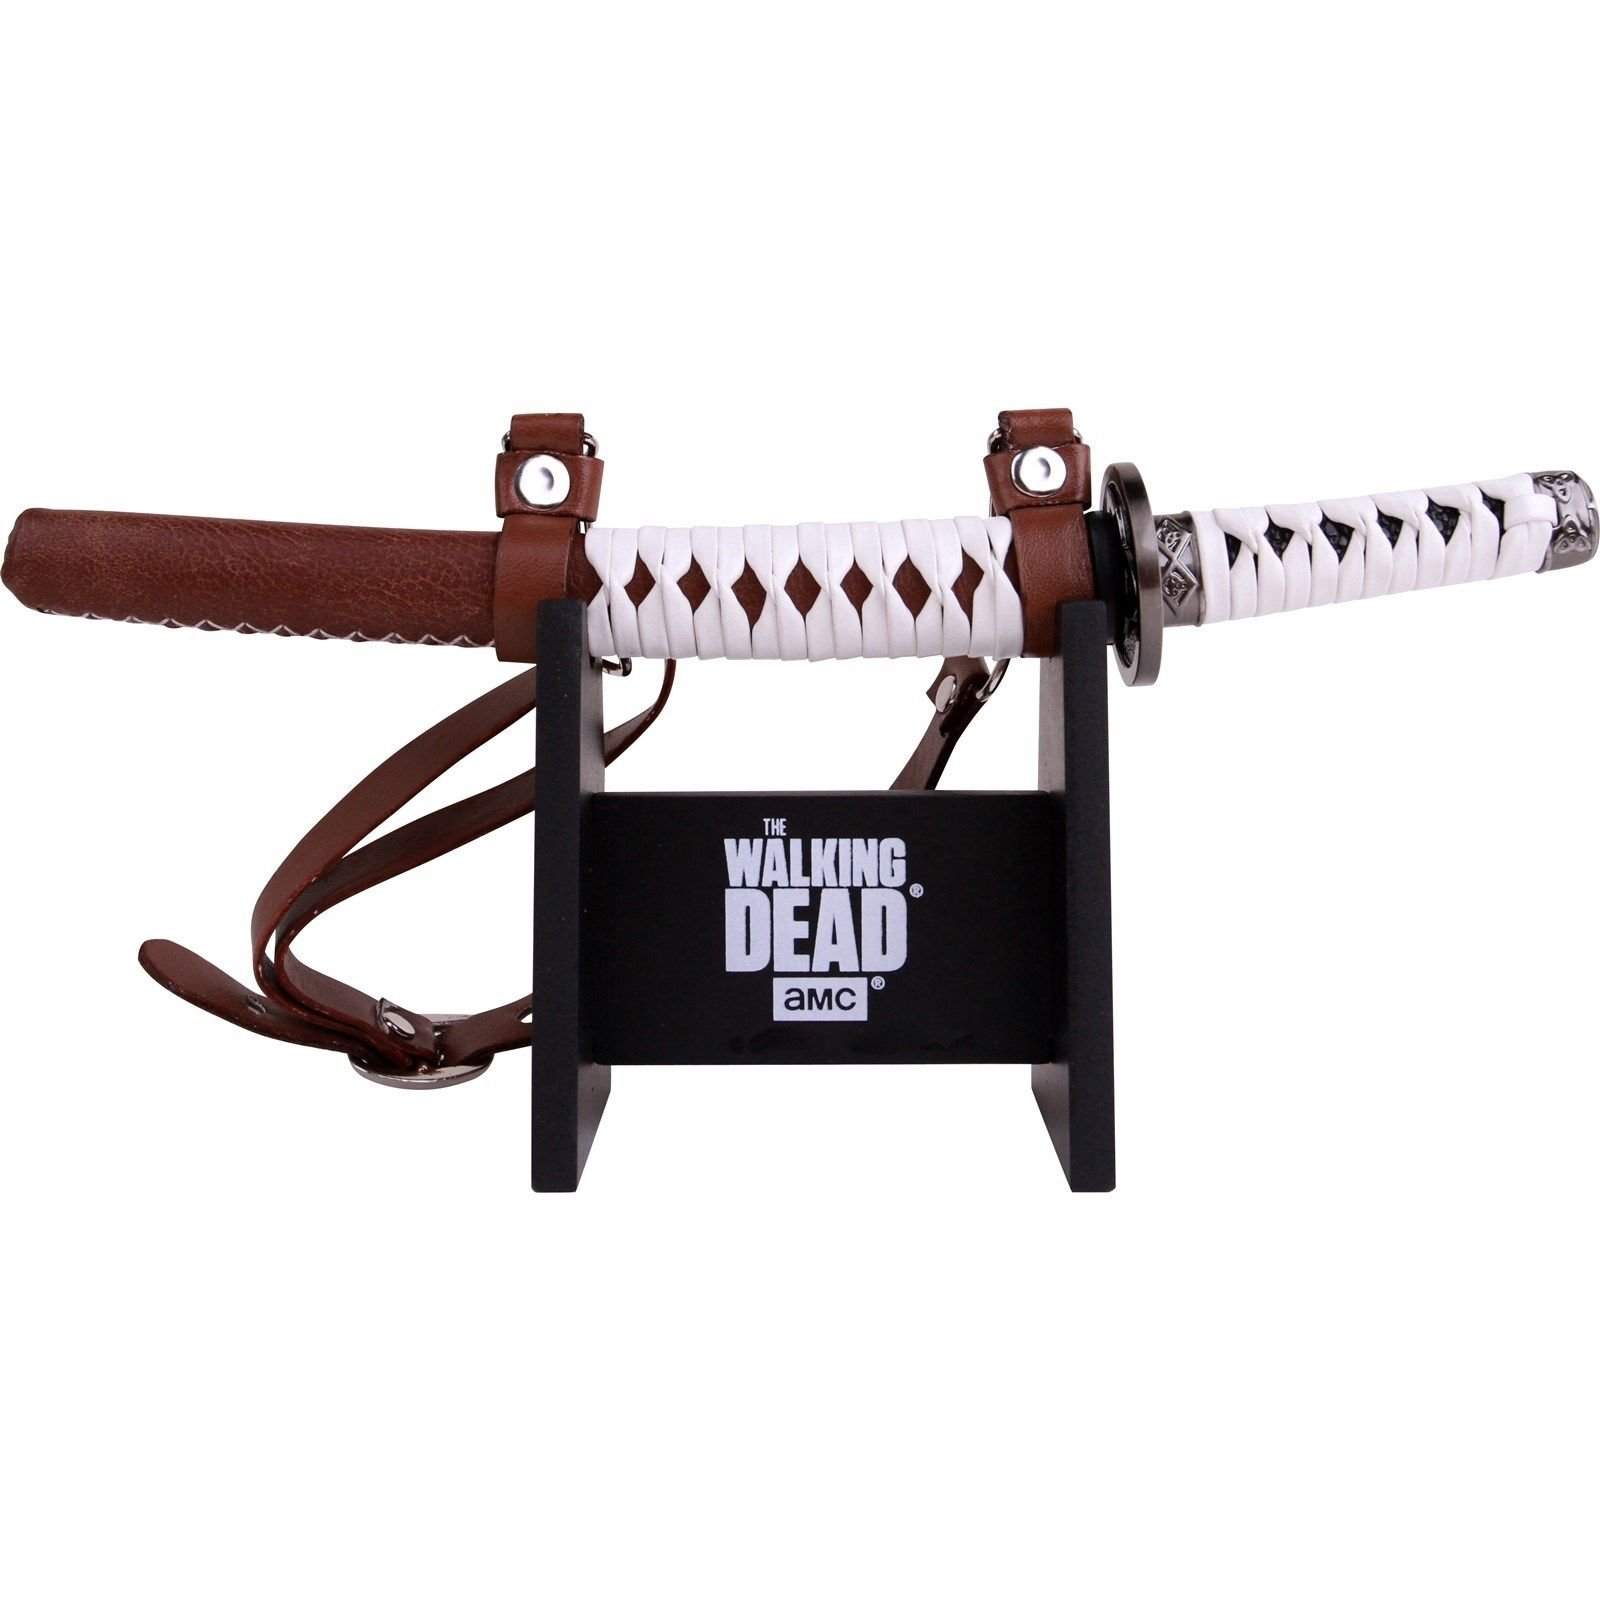 Walking Dead Official Katana Letter Opener with Display Stand by Walking Dead (Image #4)